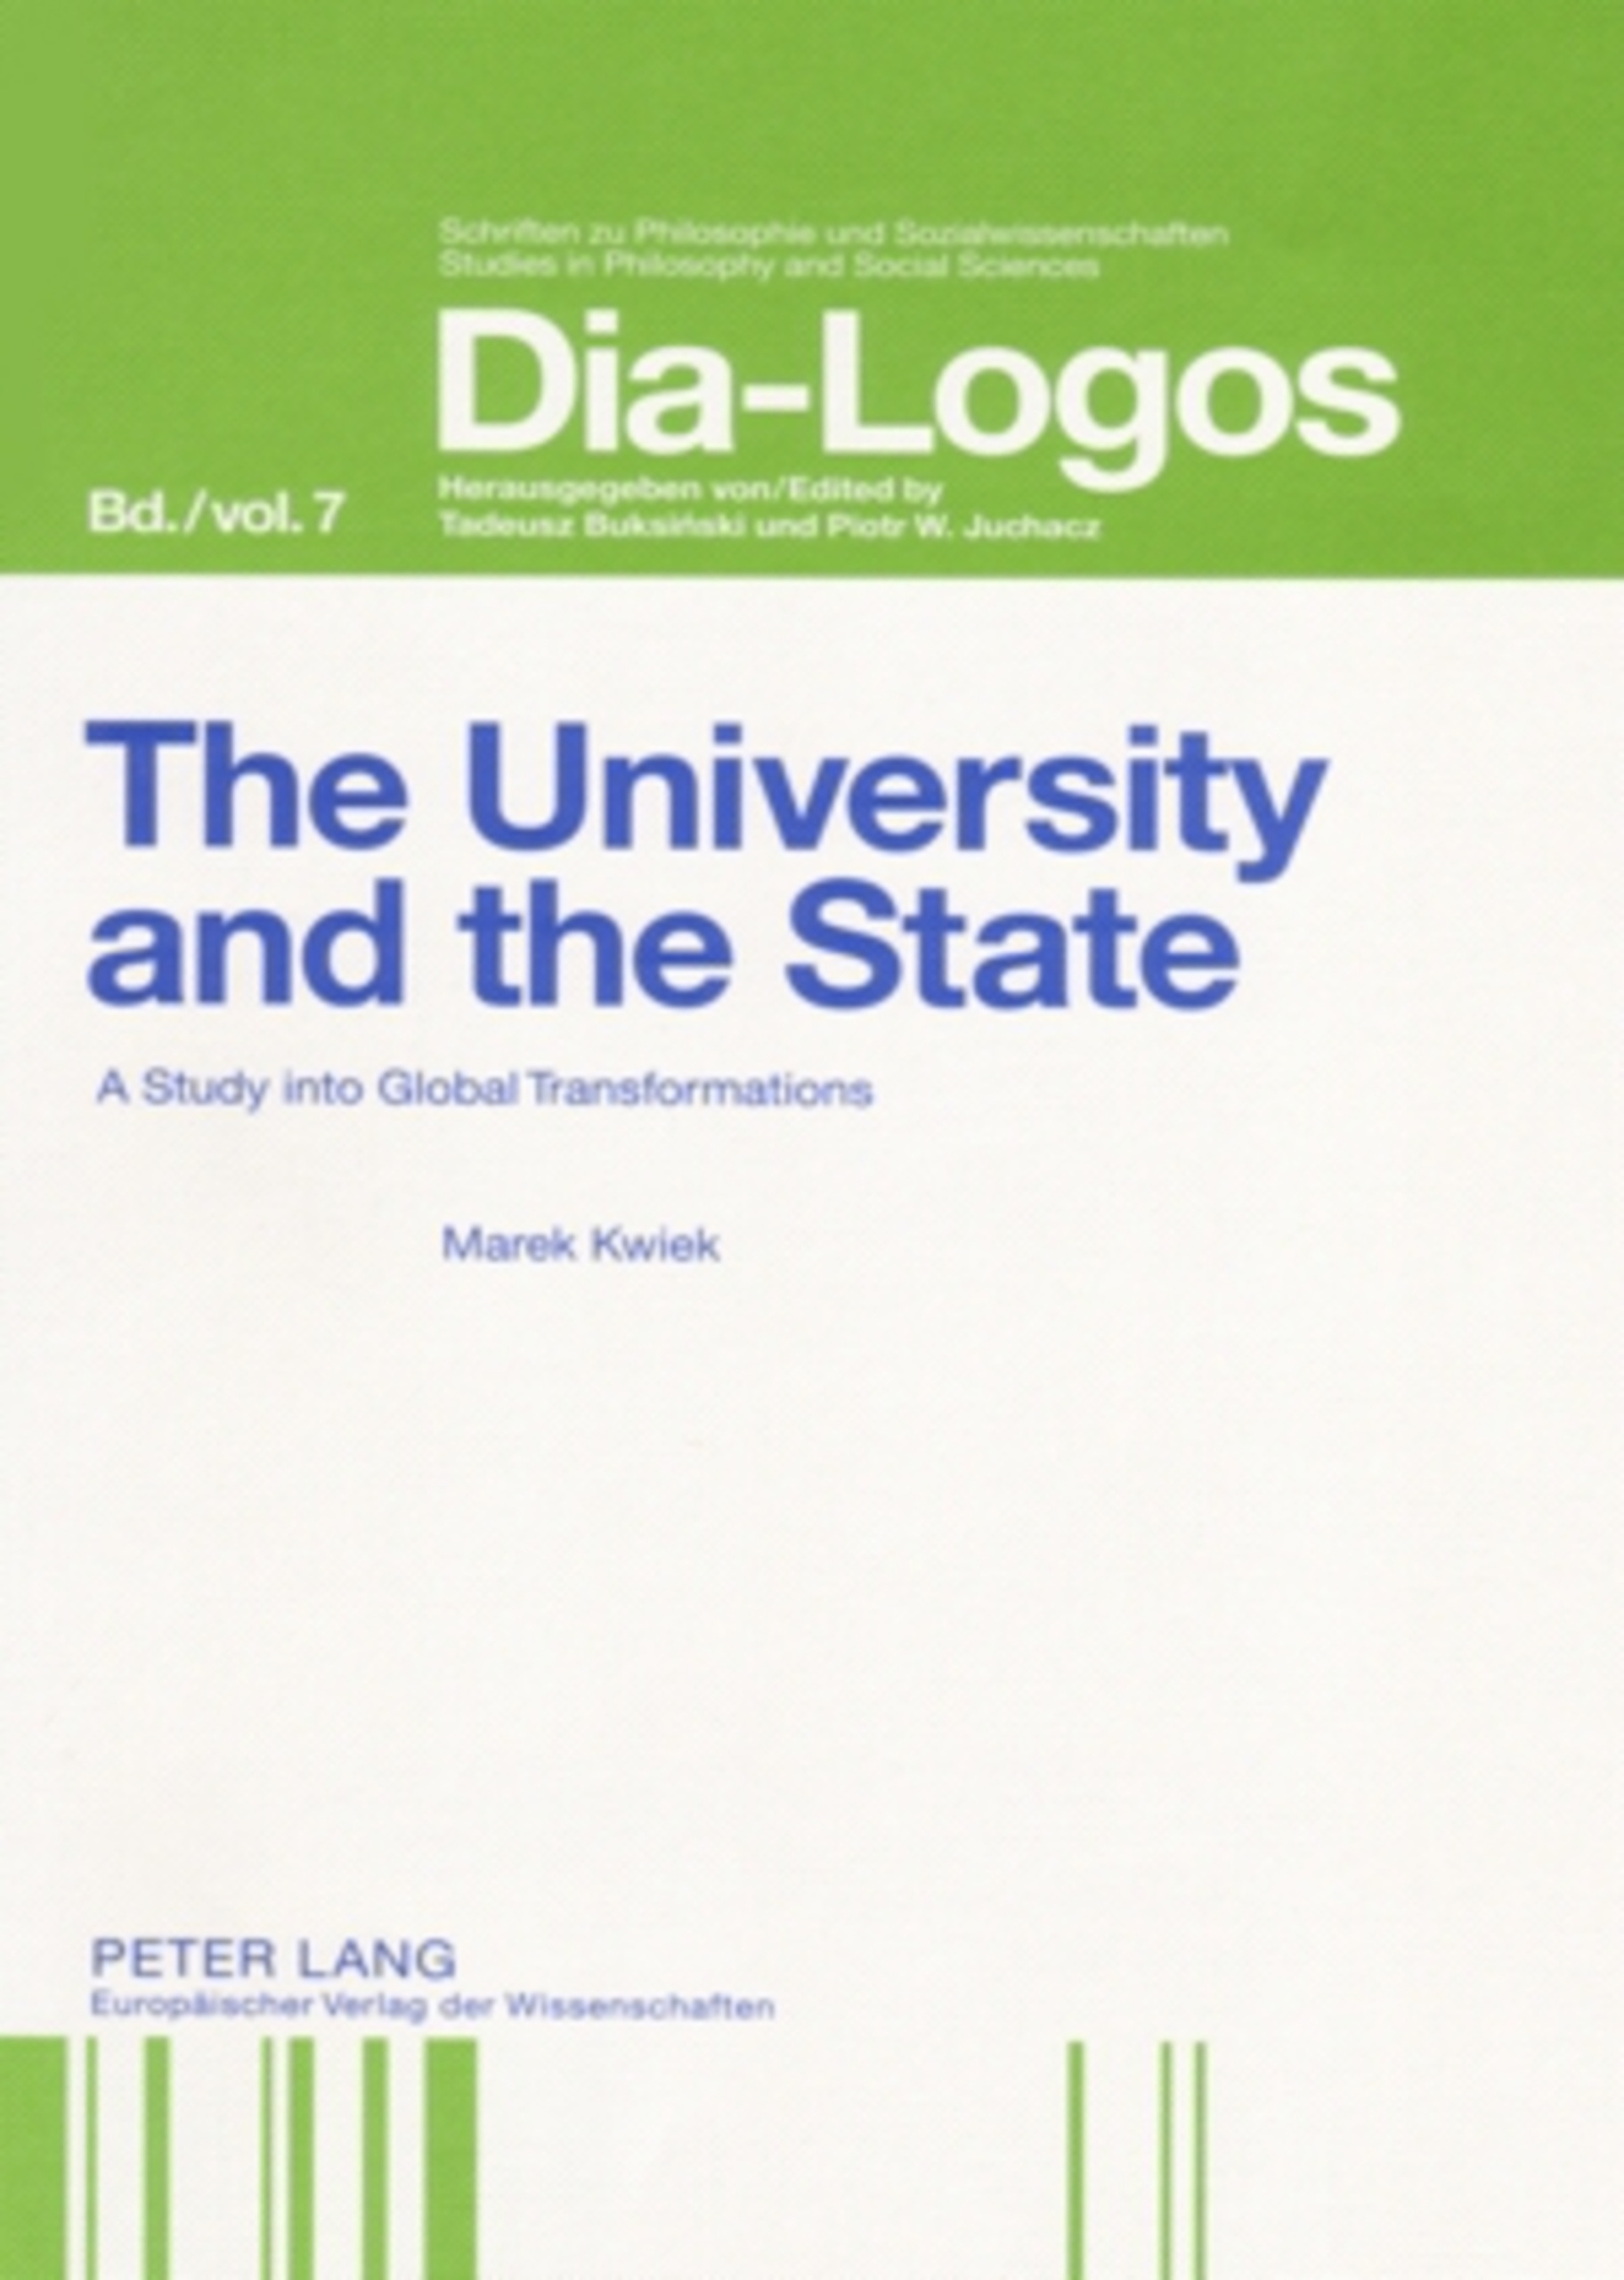 Title: The University and the State